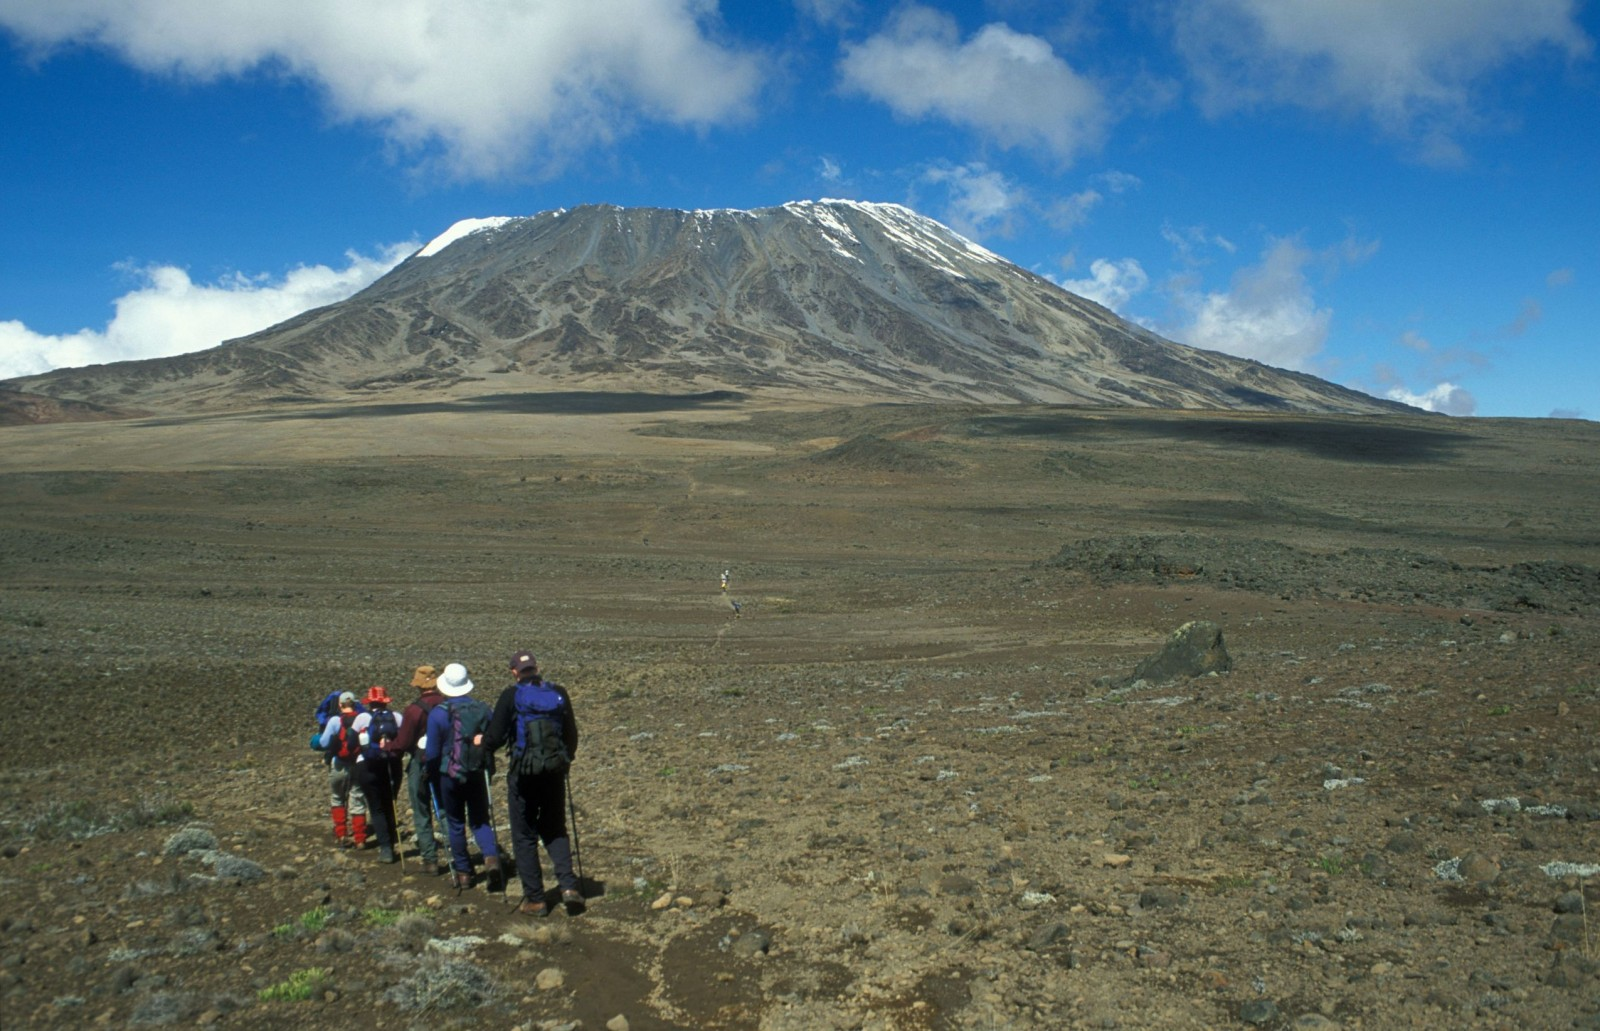 group-of-walkers-heading-for-the-snow-capped-mount-kilimanjaro-tanzania-africa-1600×1031